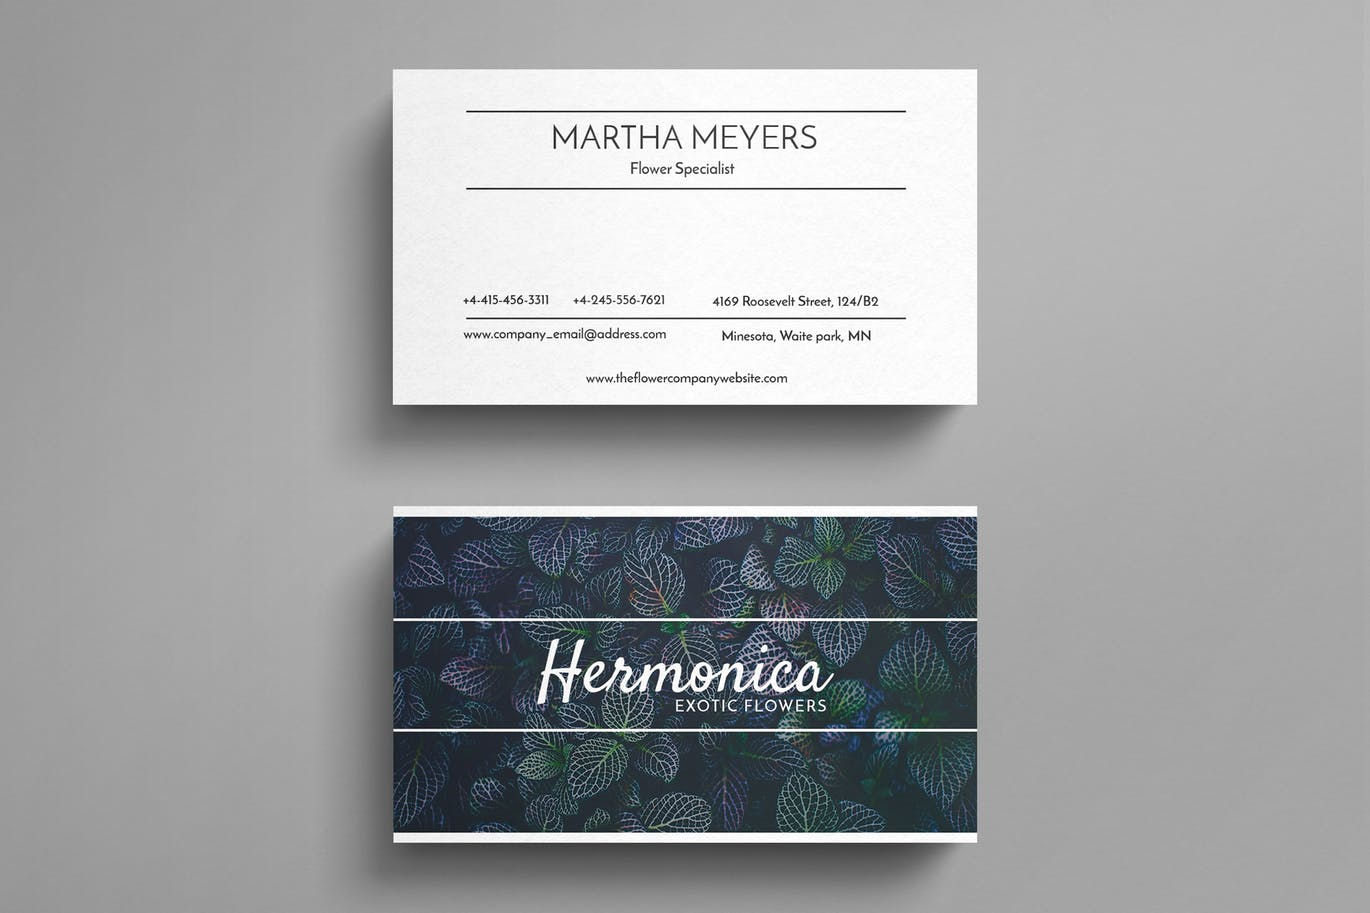 30 Stunning Graphic Design Templates Inspired by Nature   Decolore.Net